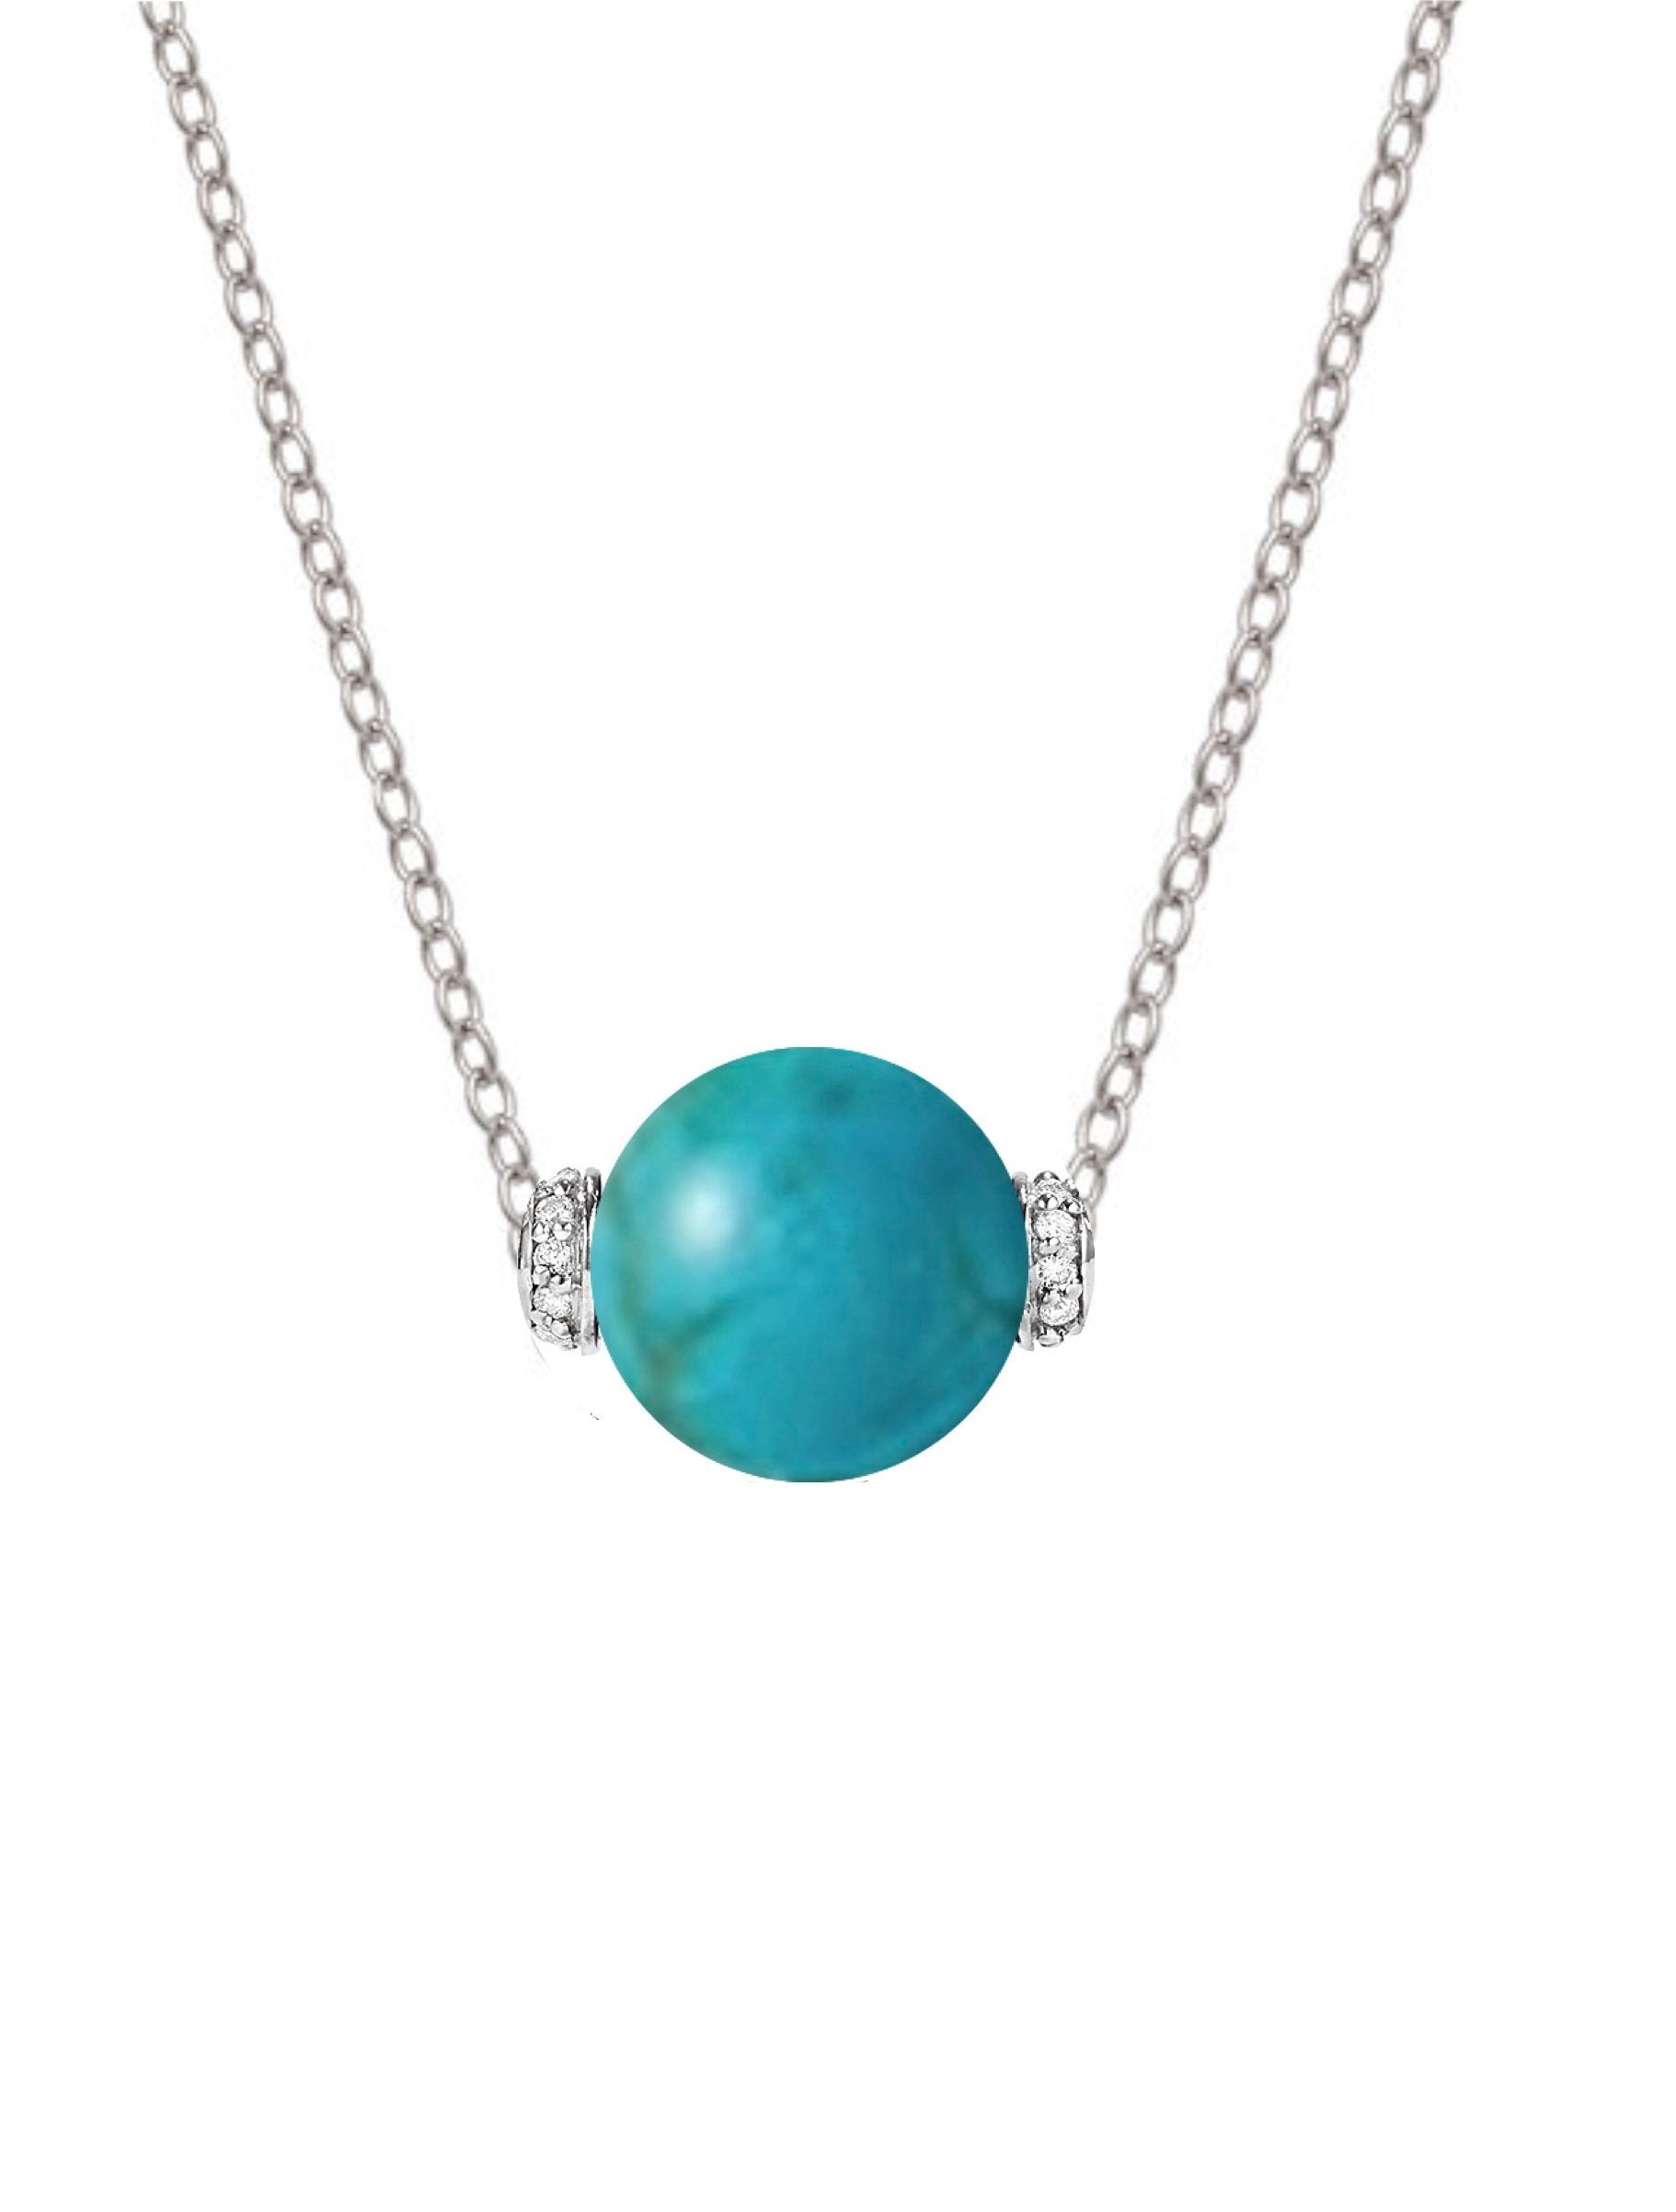 Sterling Silver Turquoise & Cz Necklace